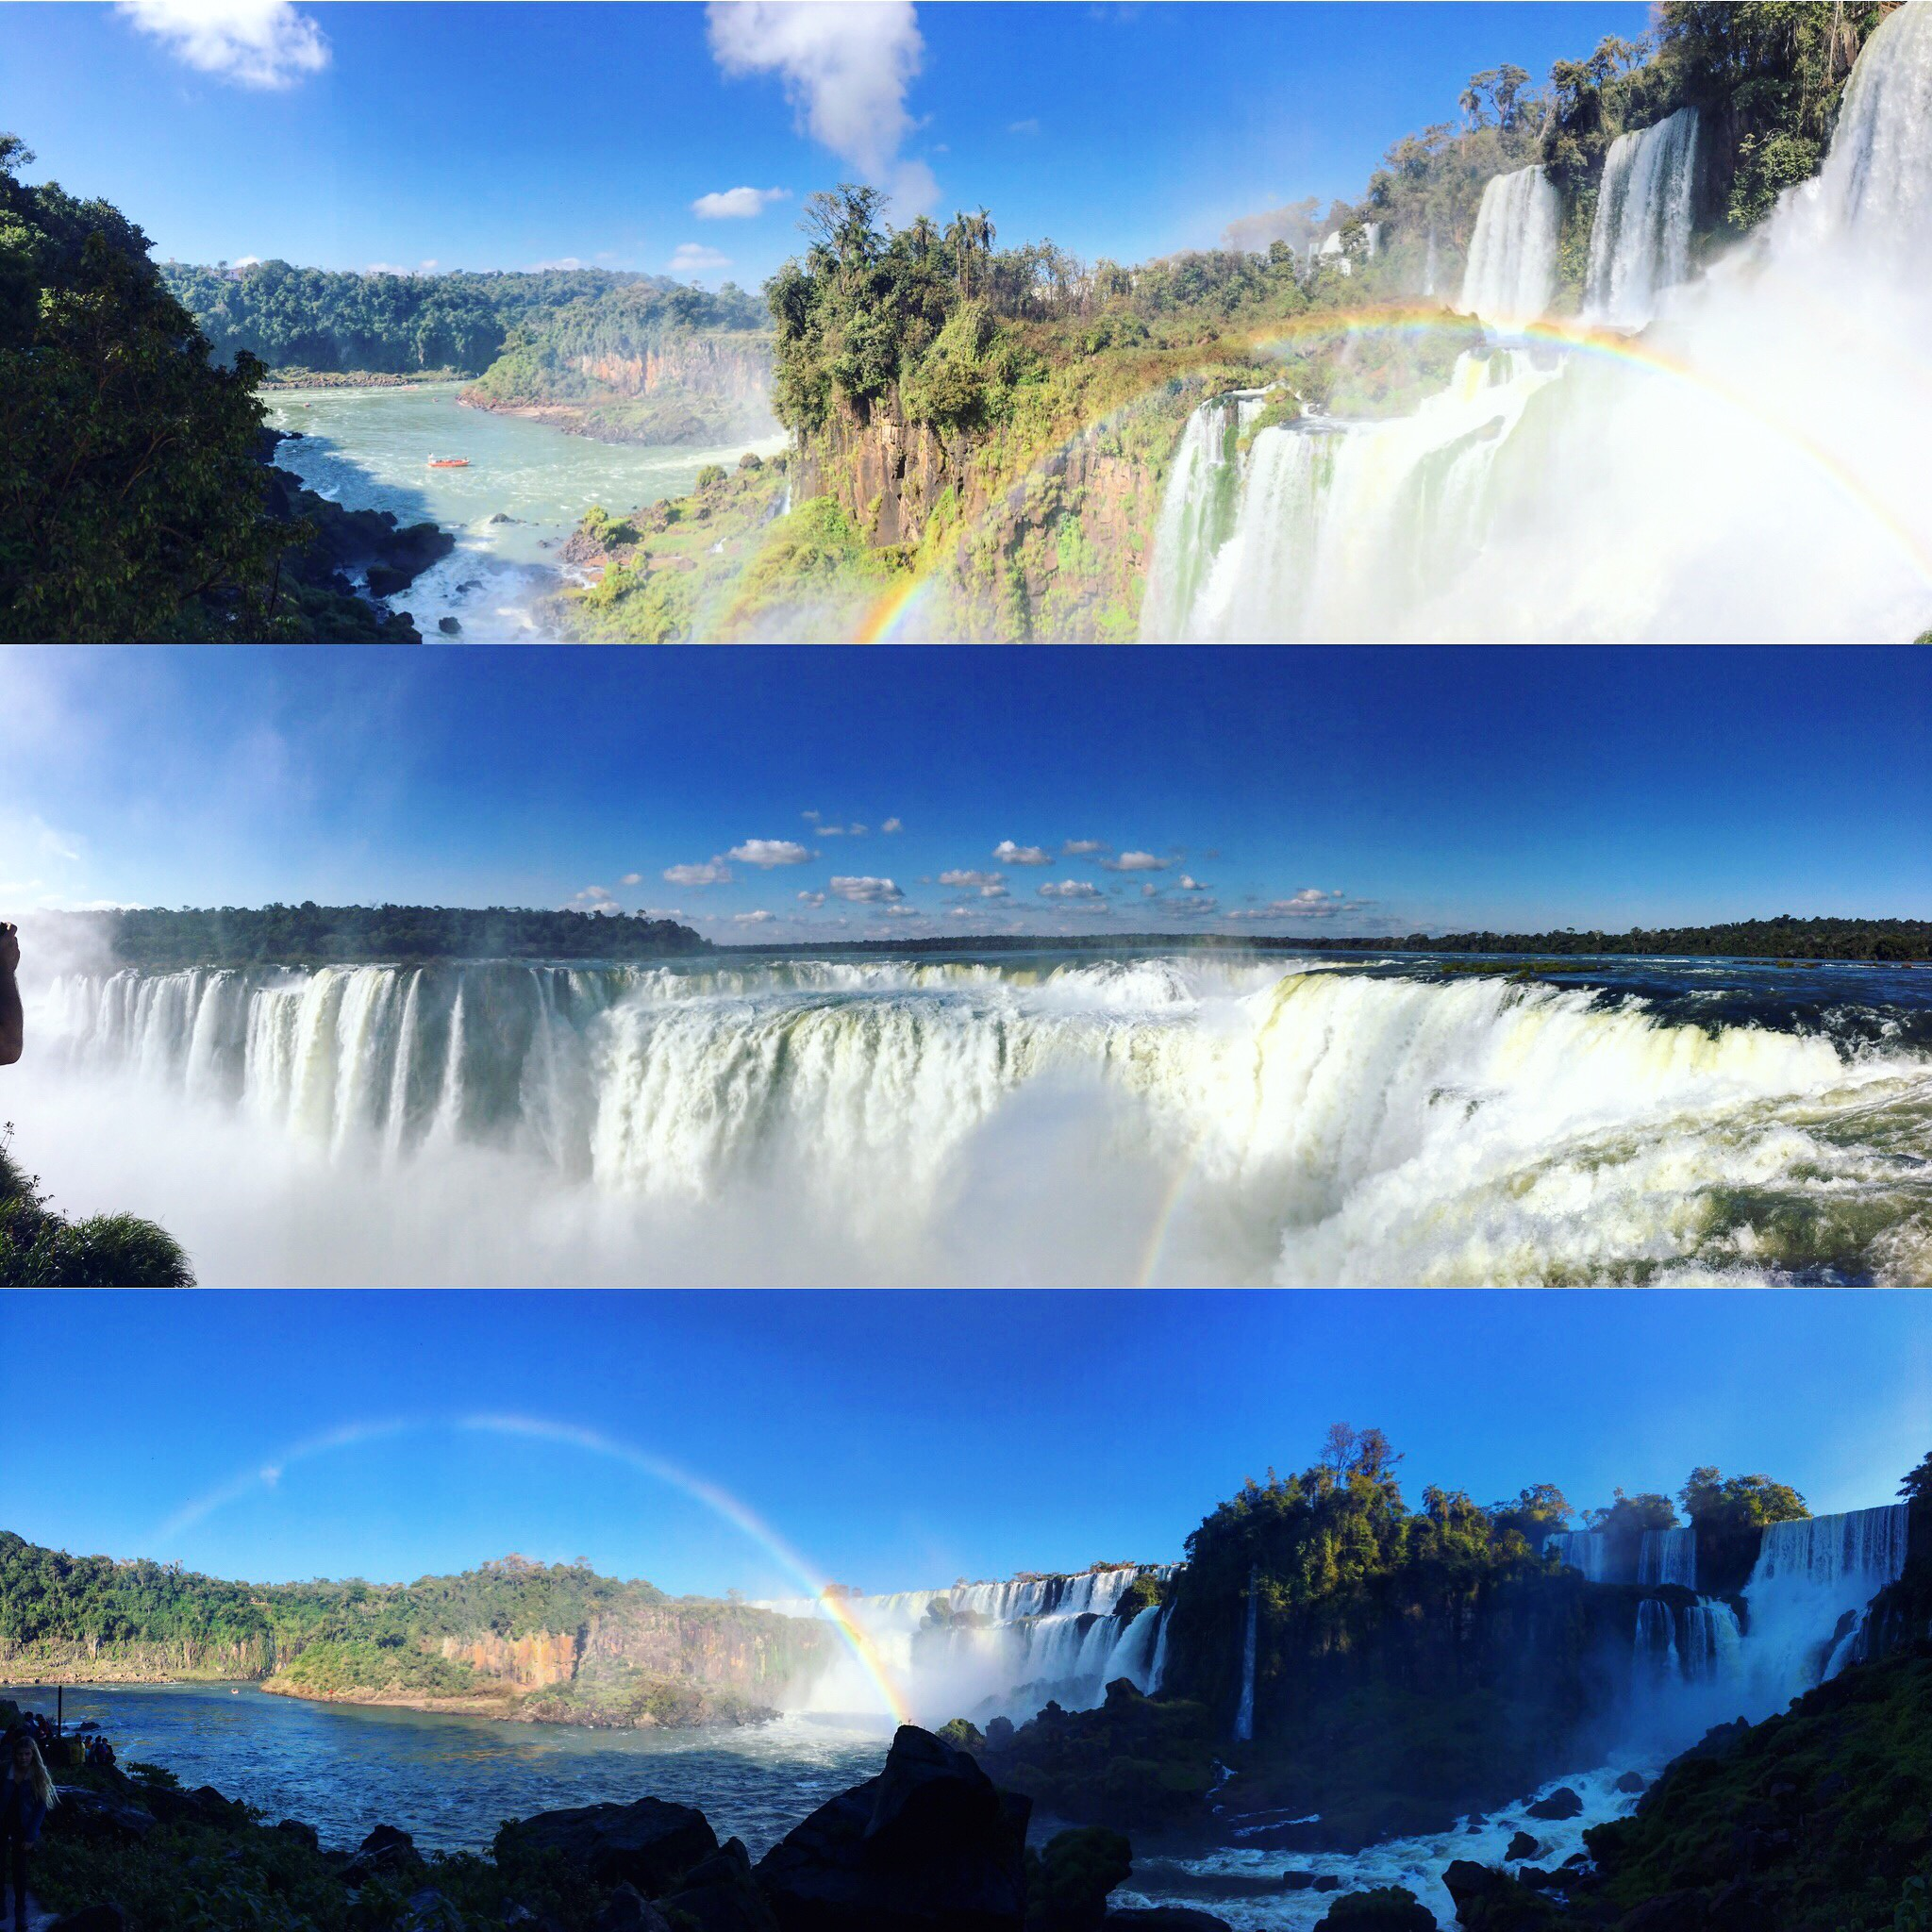 I tried picturing the beauty with some panos, but the real thing is so much more grandiose